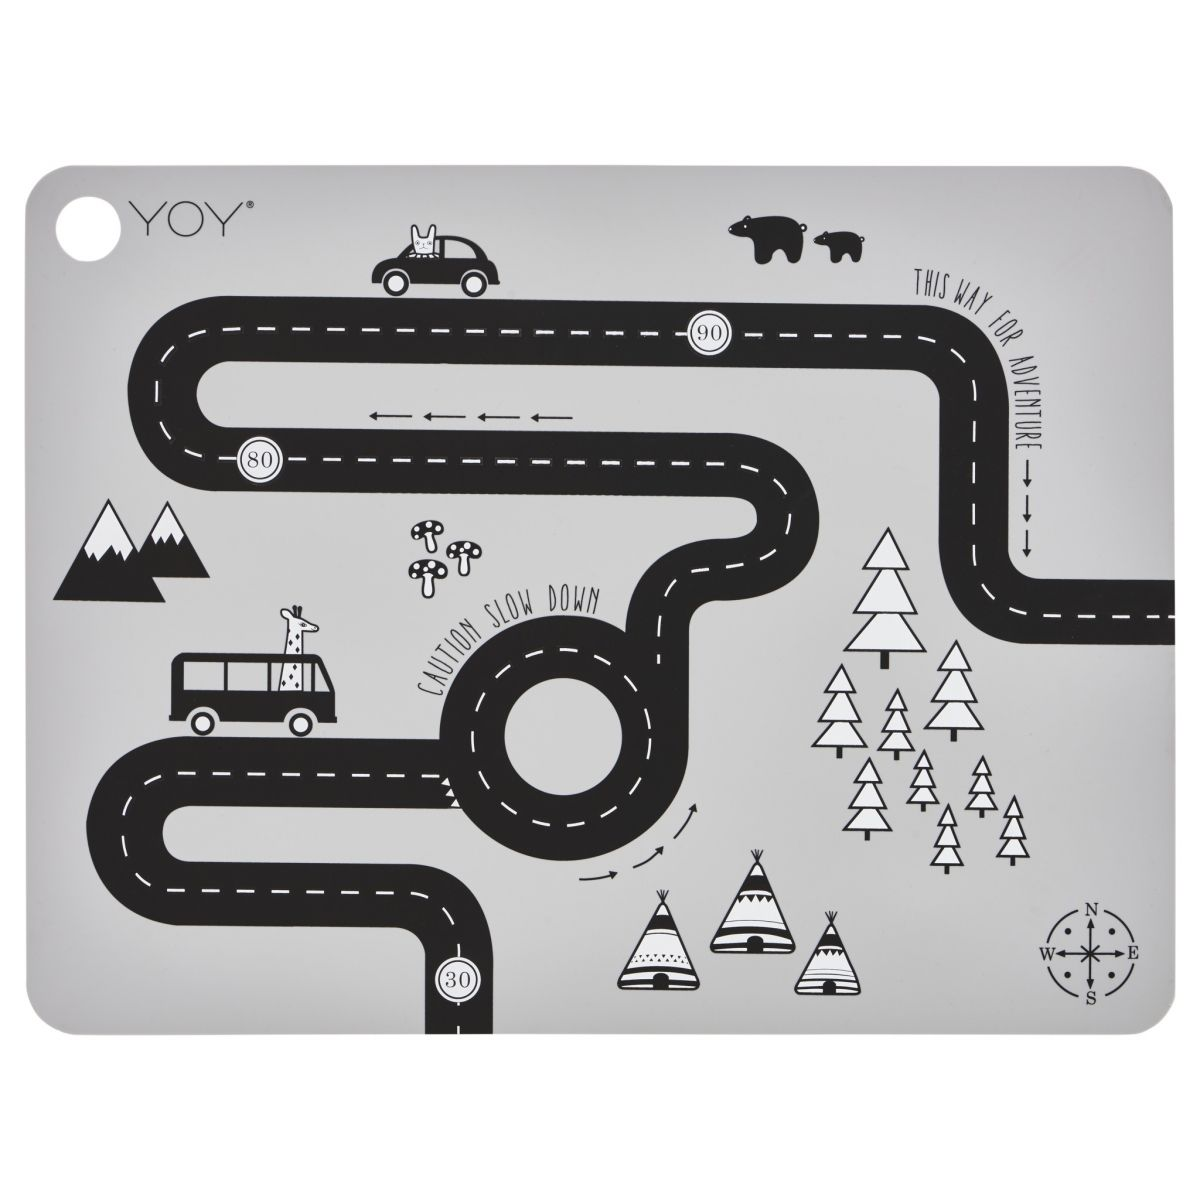 OYOY Placemate Adventure